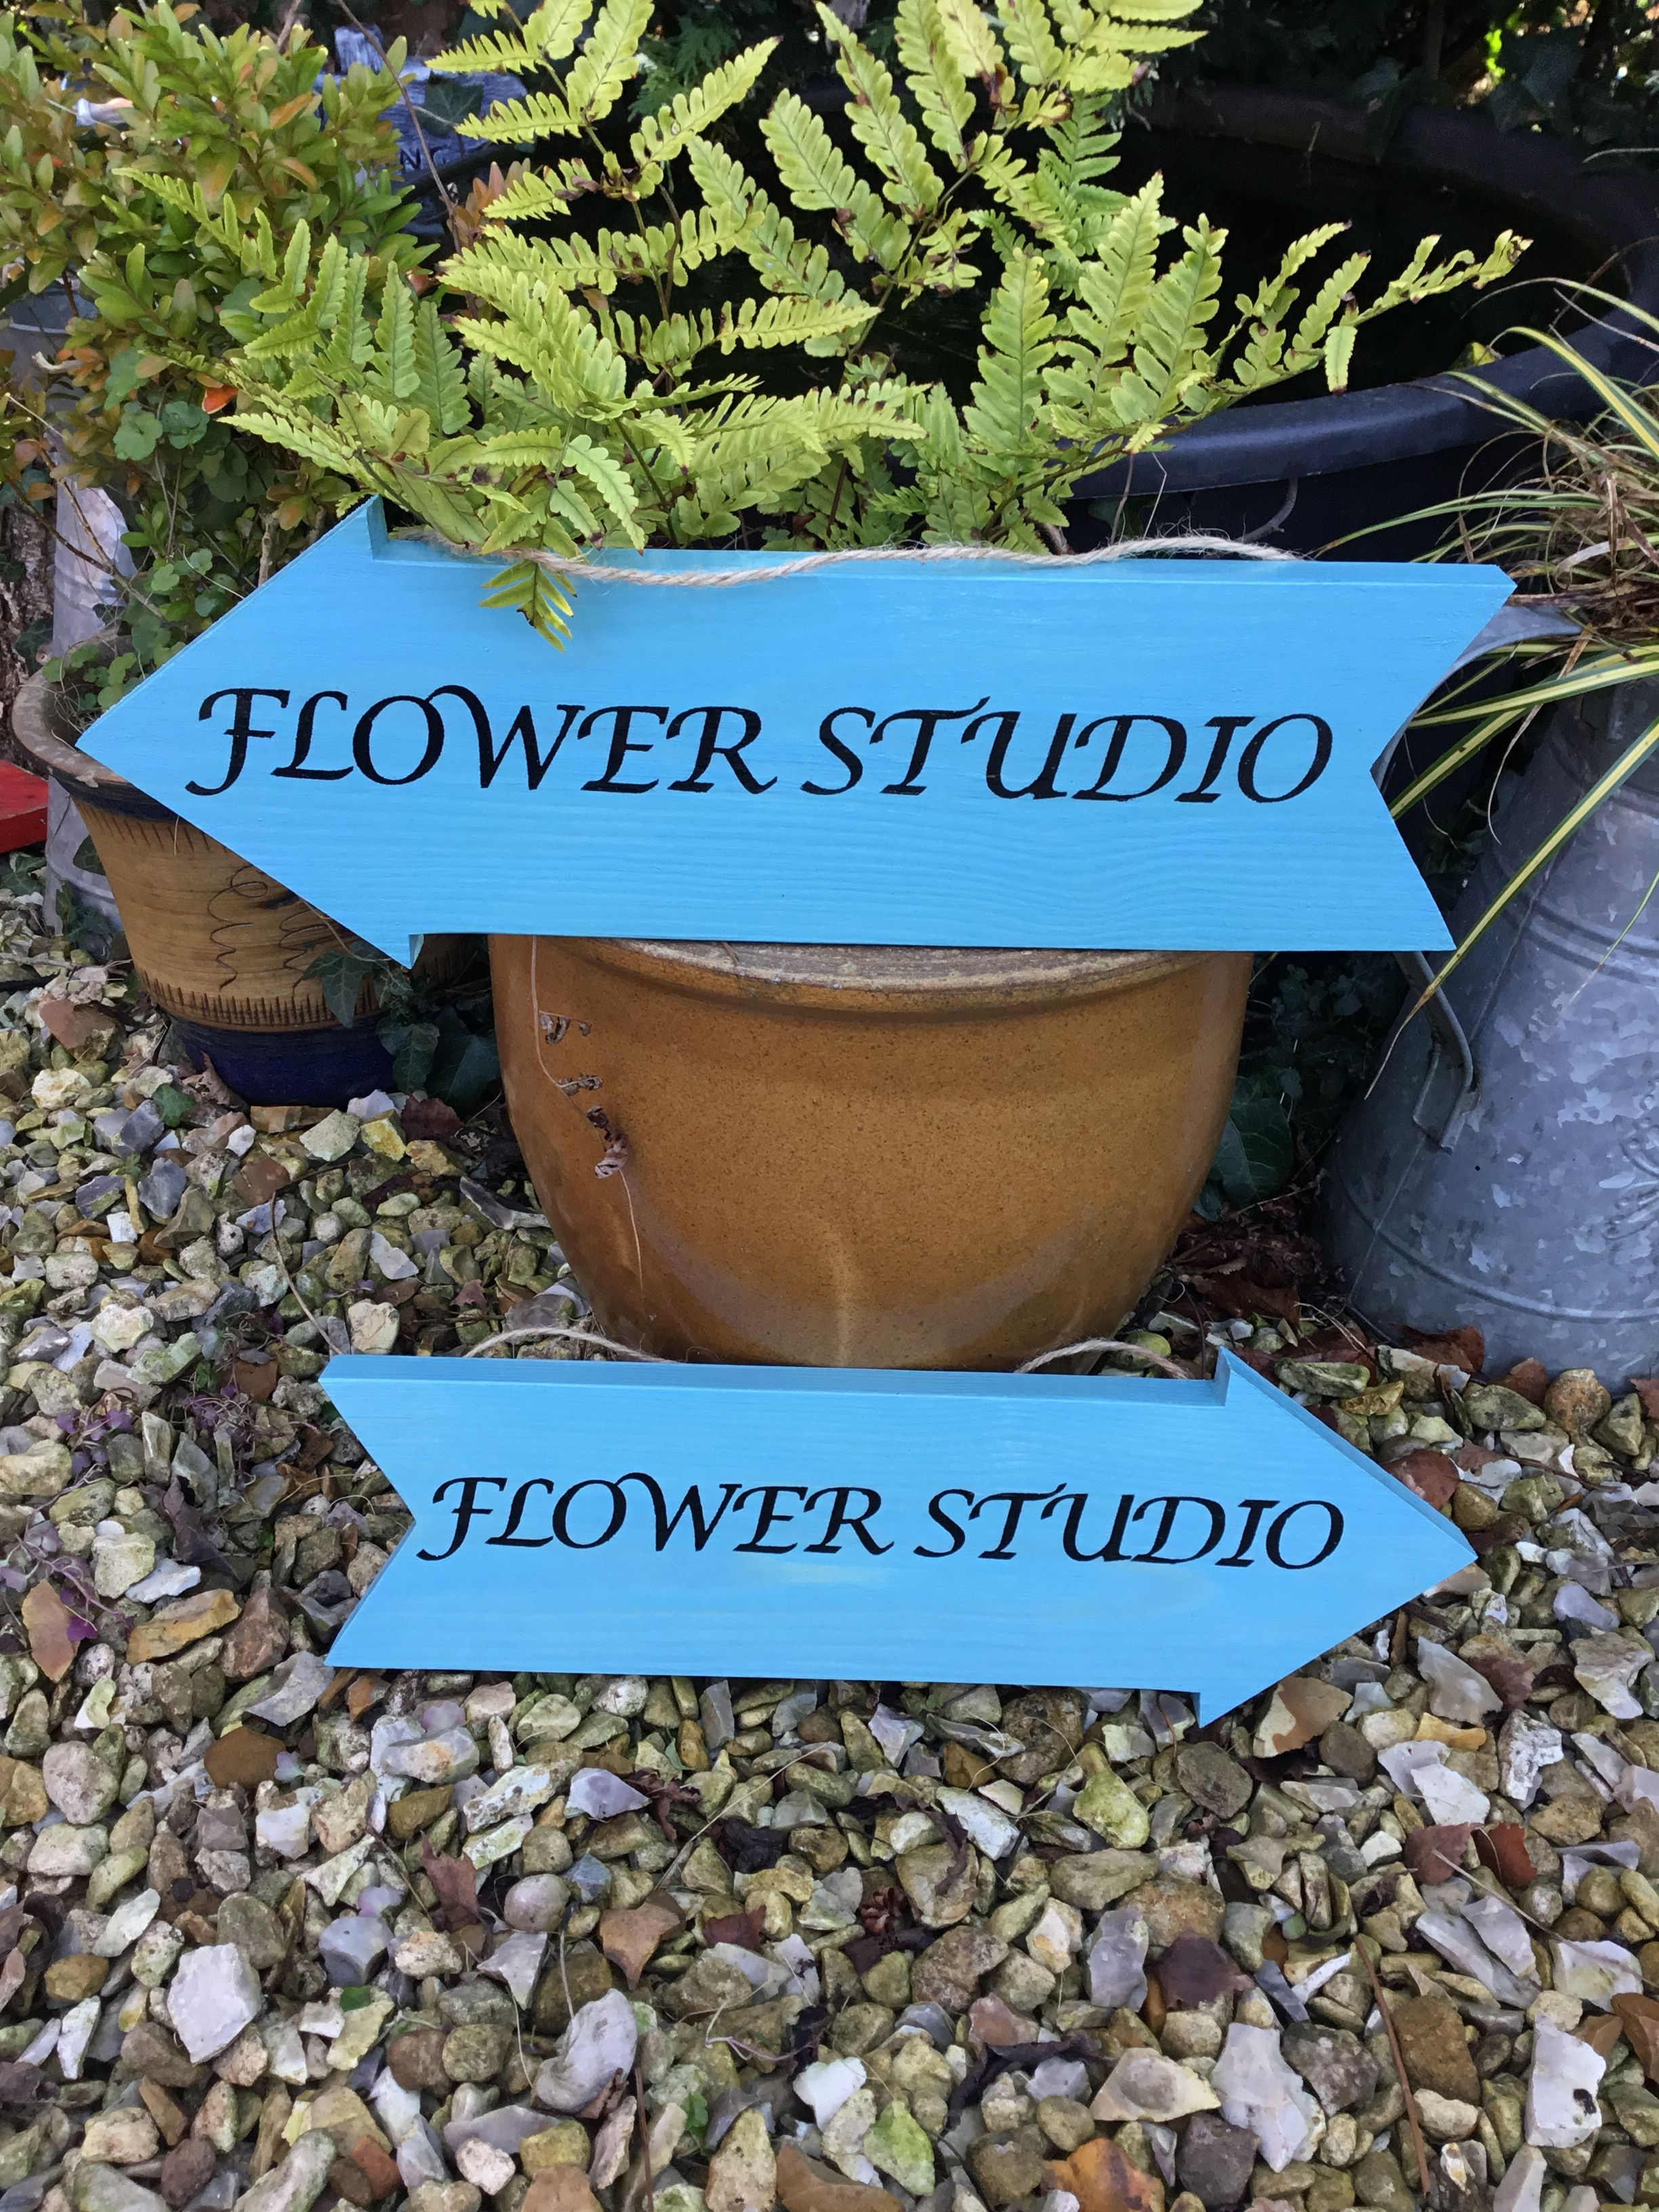 Large Vintage Style Garden Arrow Any Text Can Be Added Available In A Wide Range Of Colours 9 99 Size 45cm X 13 Cm Avai Personalised Gifts Handmade Personalized Wooden Signs Personalized Gifts